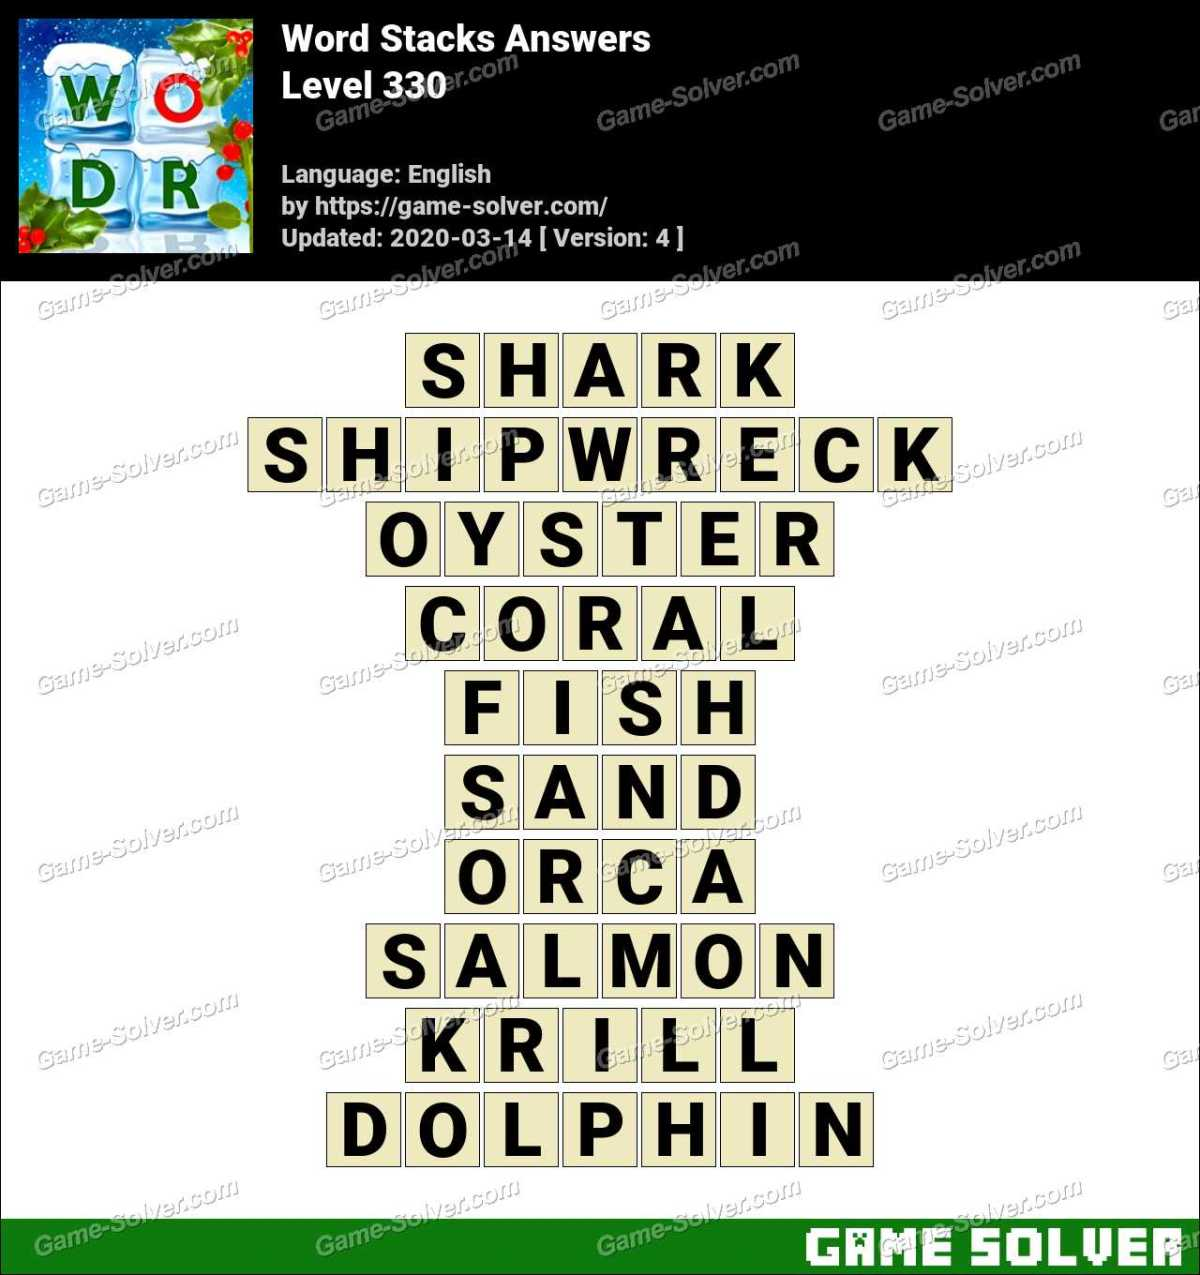 Word Stacks Level 330 Answers